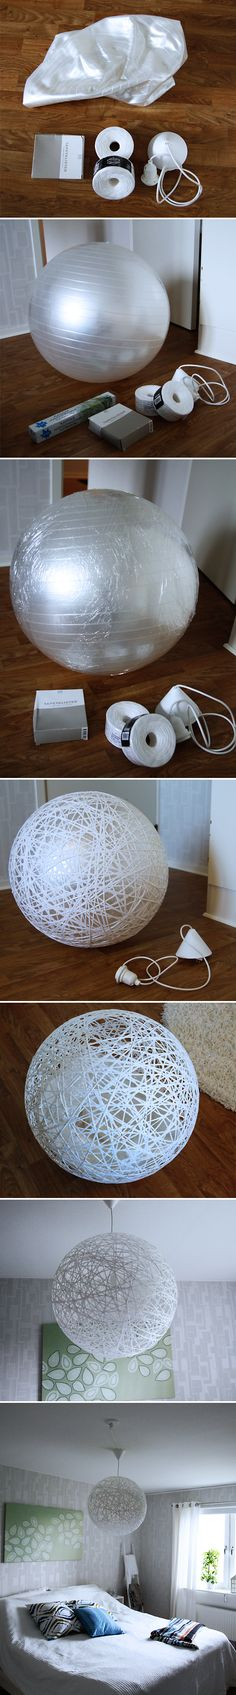 DIY Lamp Fixture - love the size!